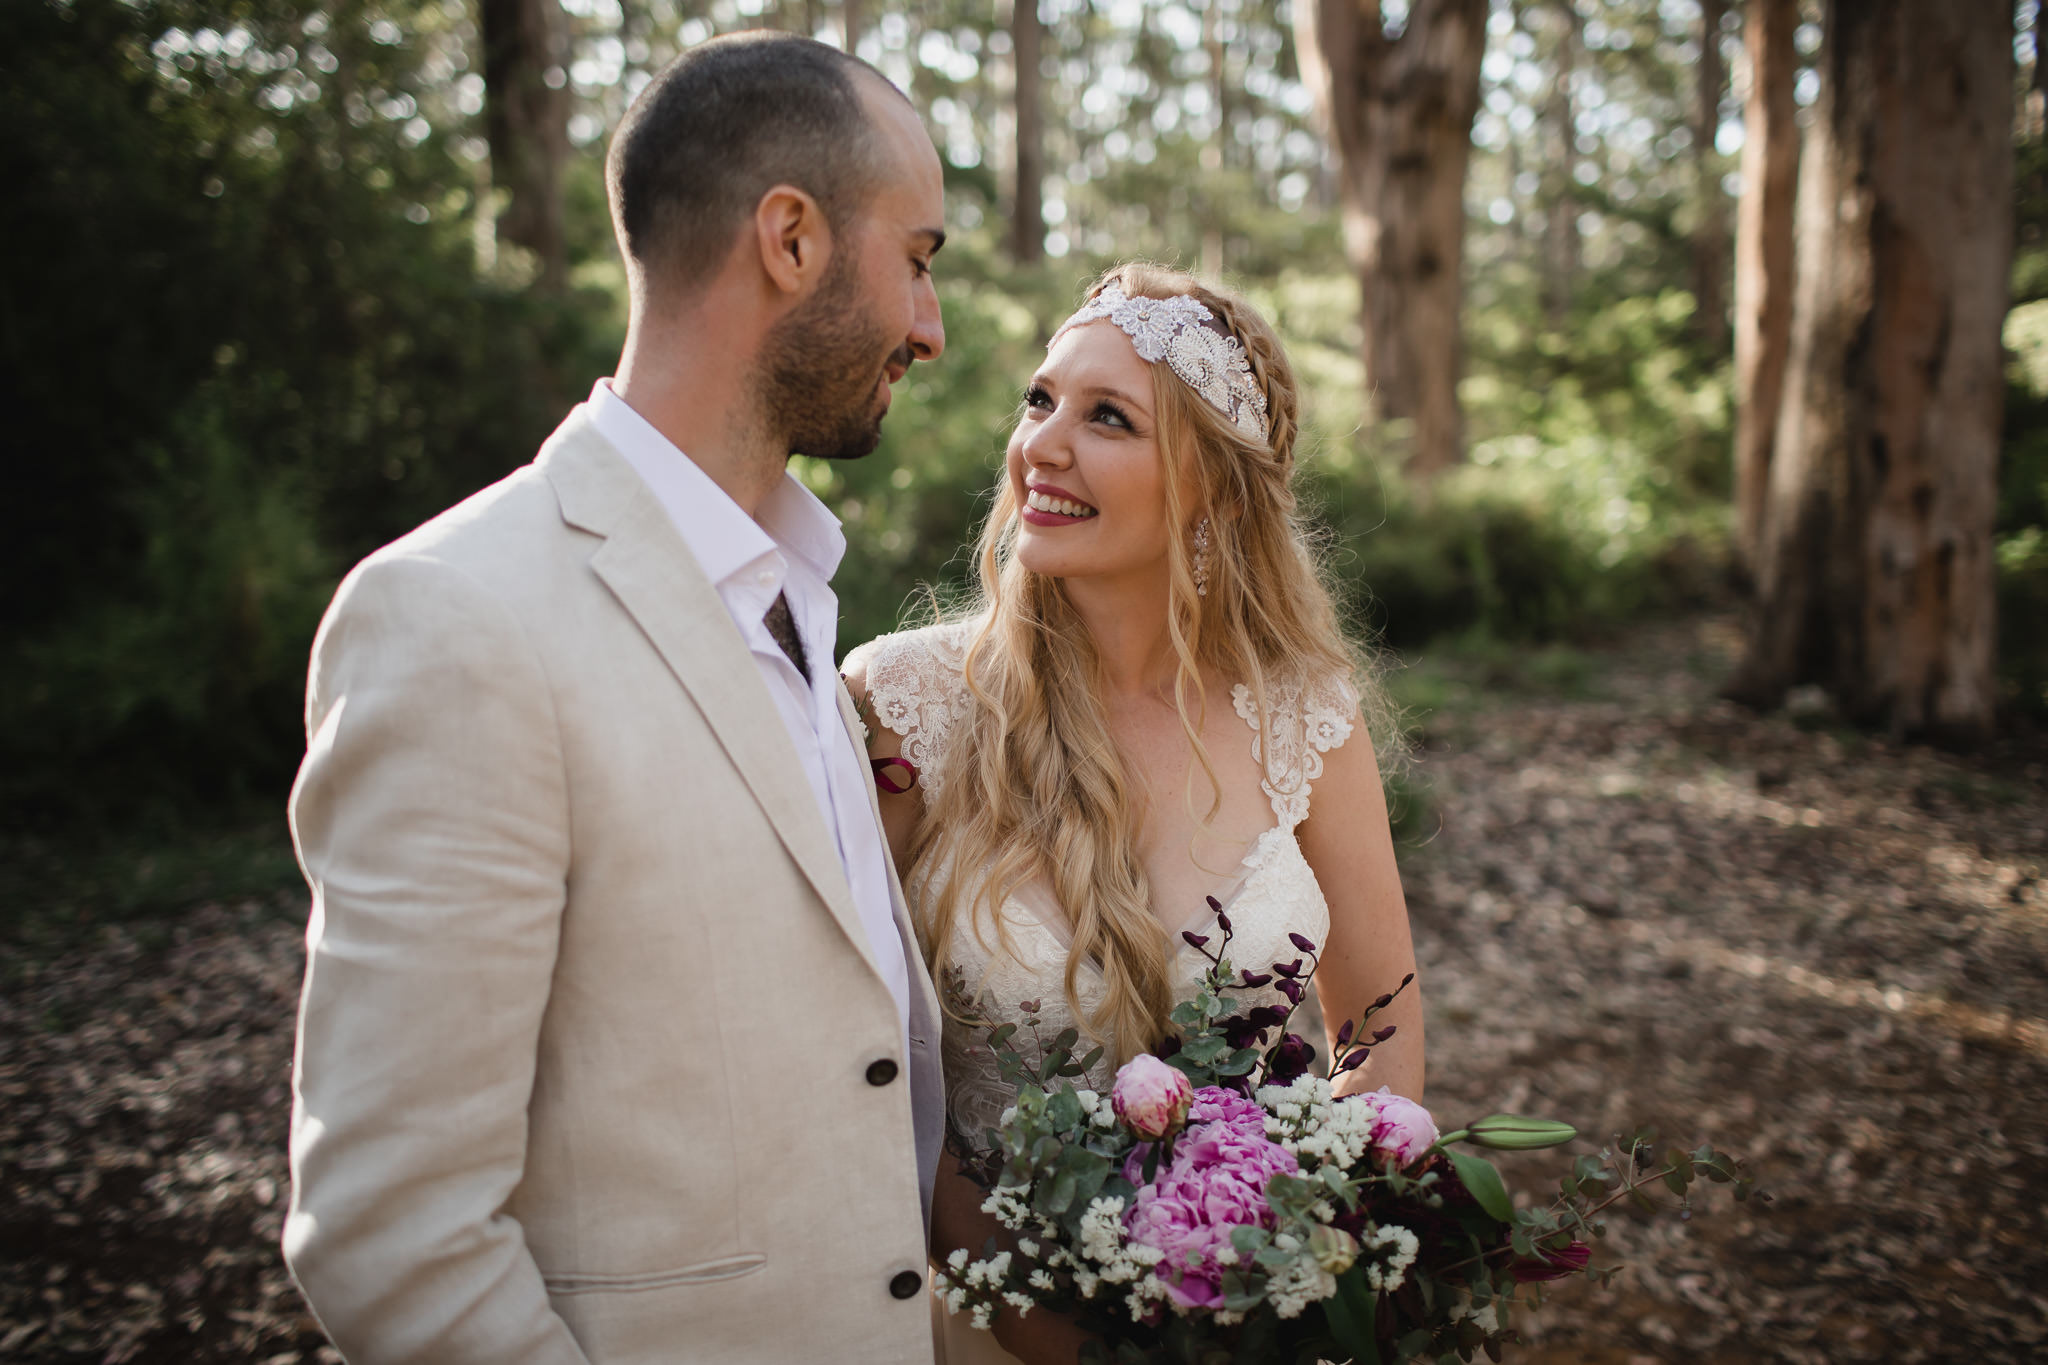 Bride with vintage dress and headpiece smiling at husband after elopement ceremony in Boranup forest